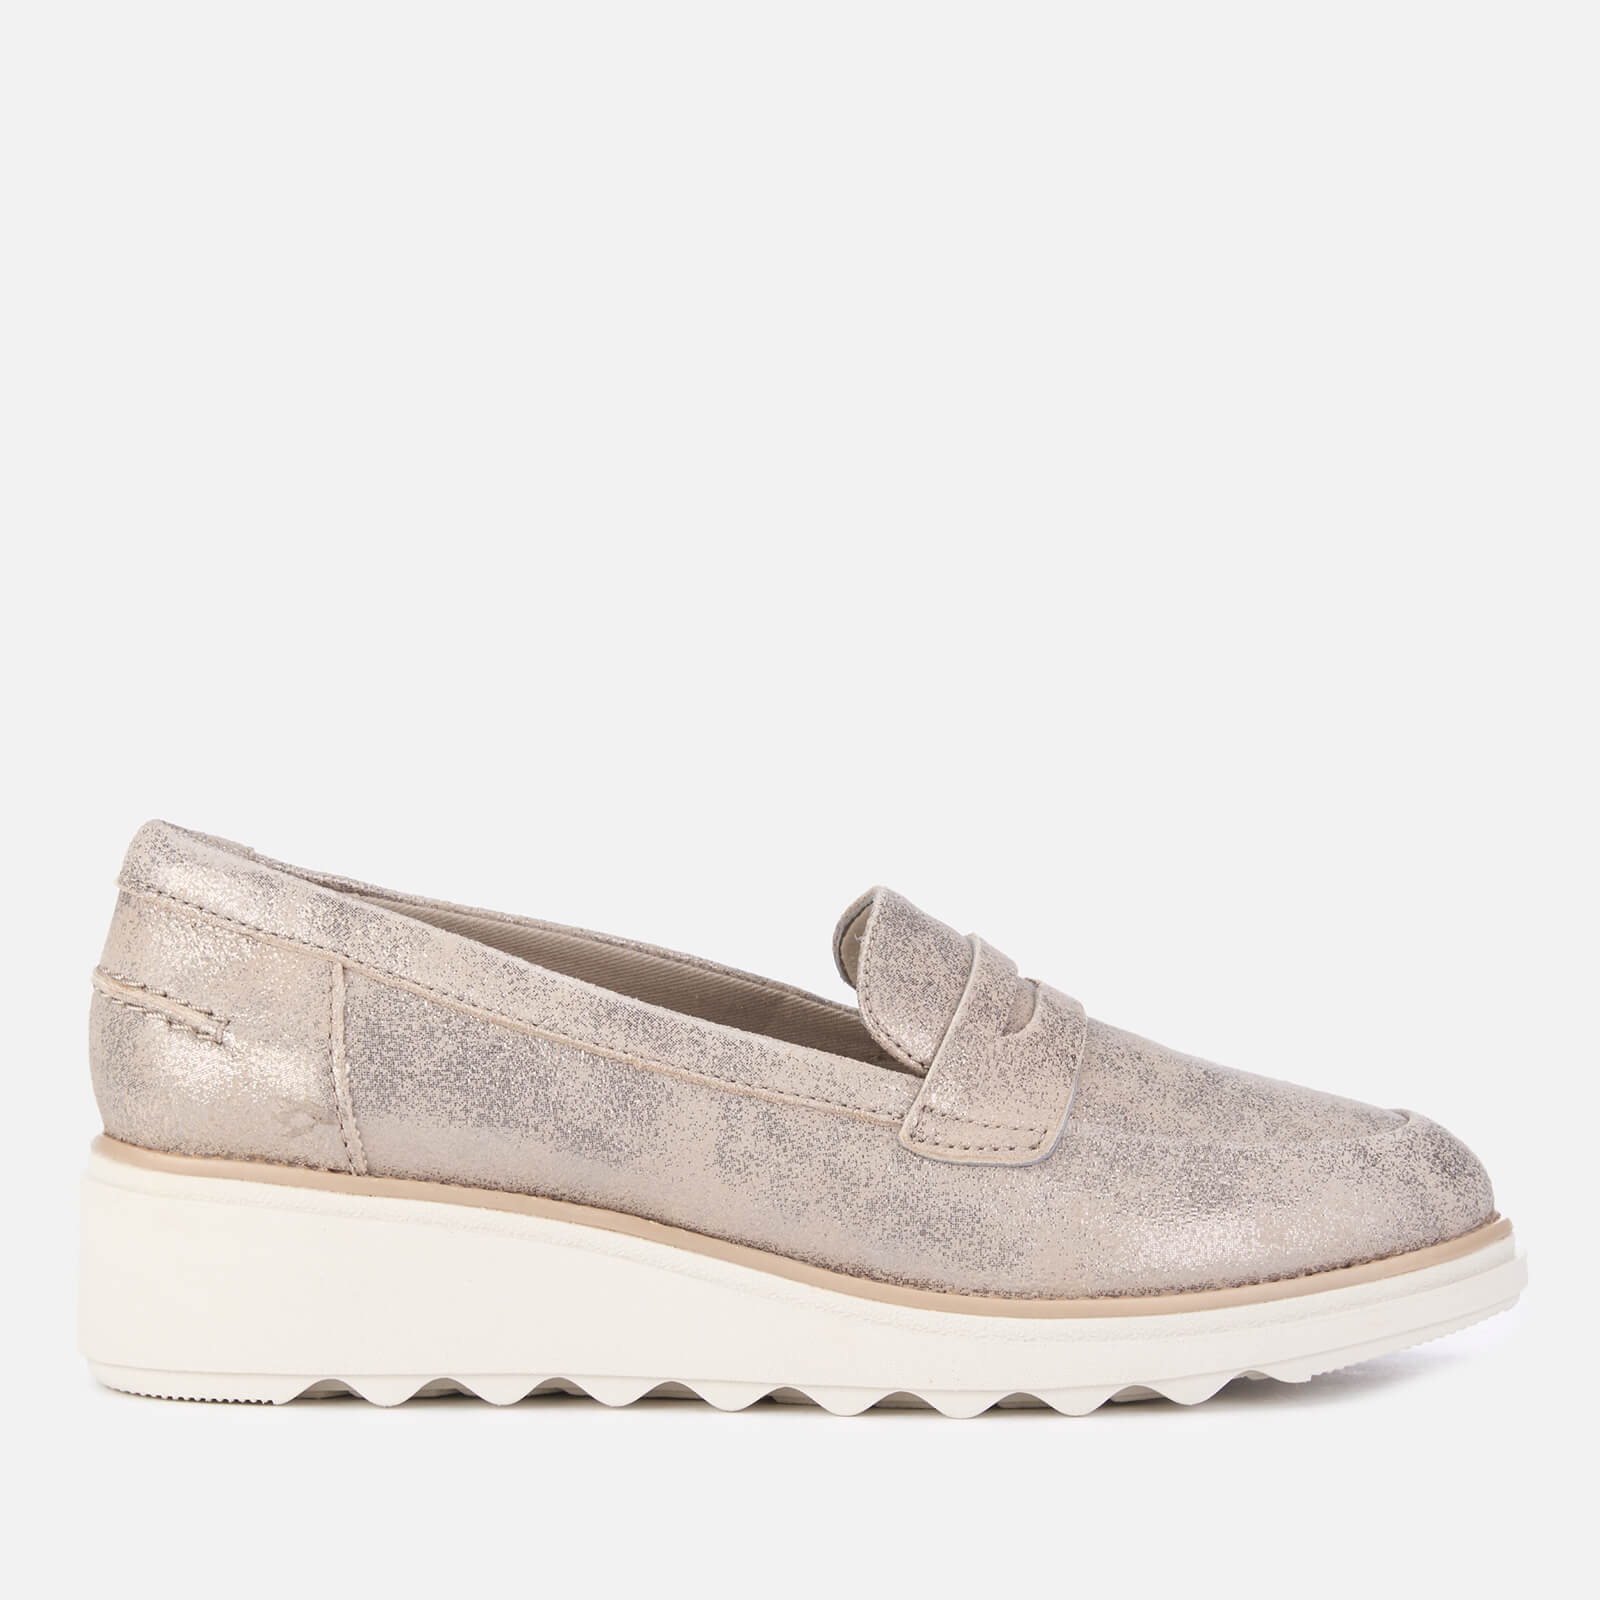 41172ed205994 Clarks Women's Sharon Ranch Suede Loafers - Pewter   FREE UK Delivery    Allsole